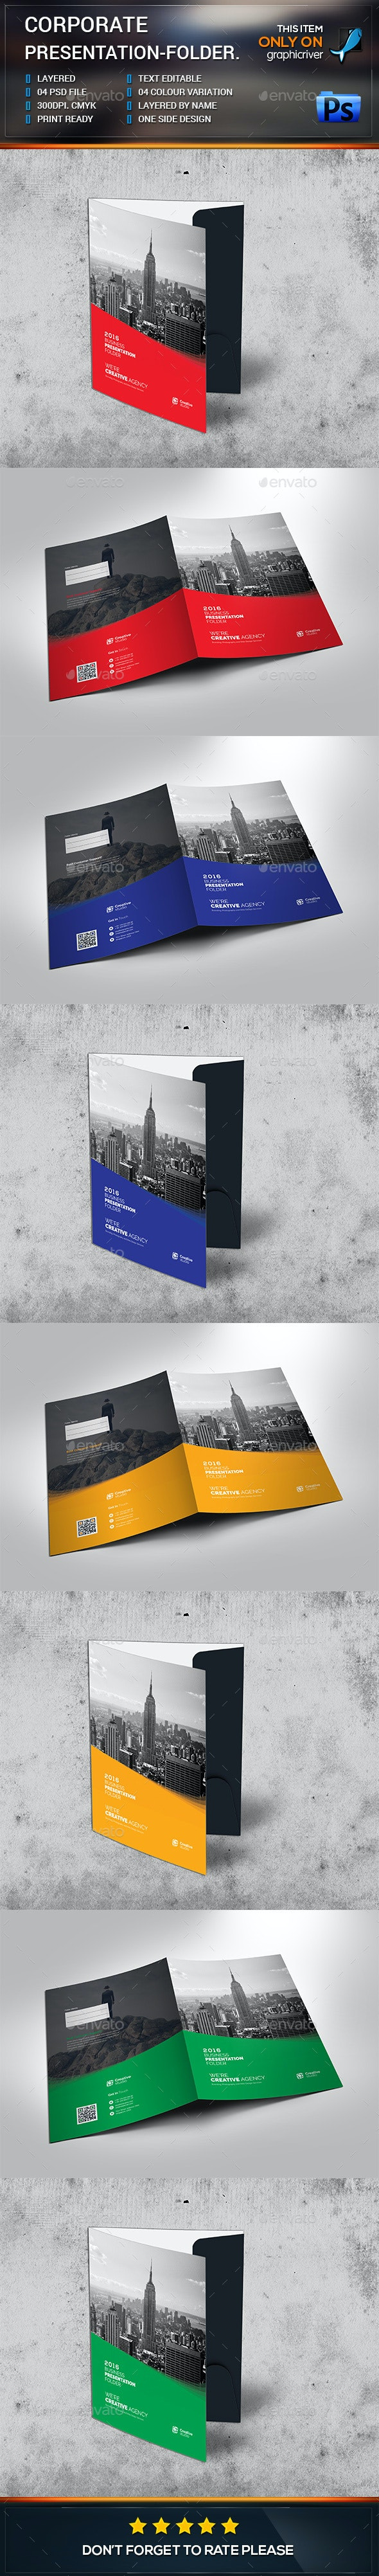 Corporate Business Presentation-Folder - Stationery Print Templates